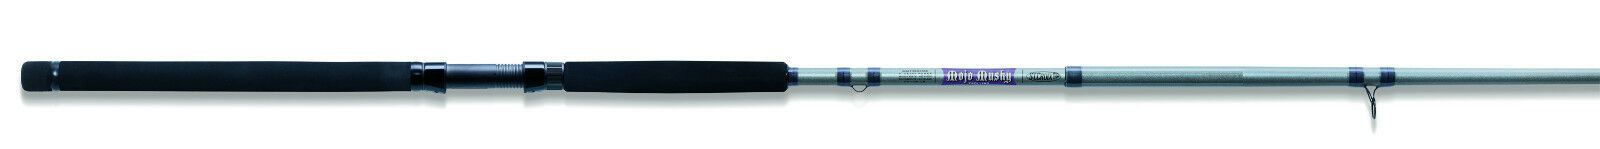 St. Croix Mojo  Musky Trolling Rod (Choose Model)  inexpensive